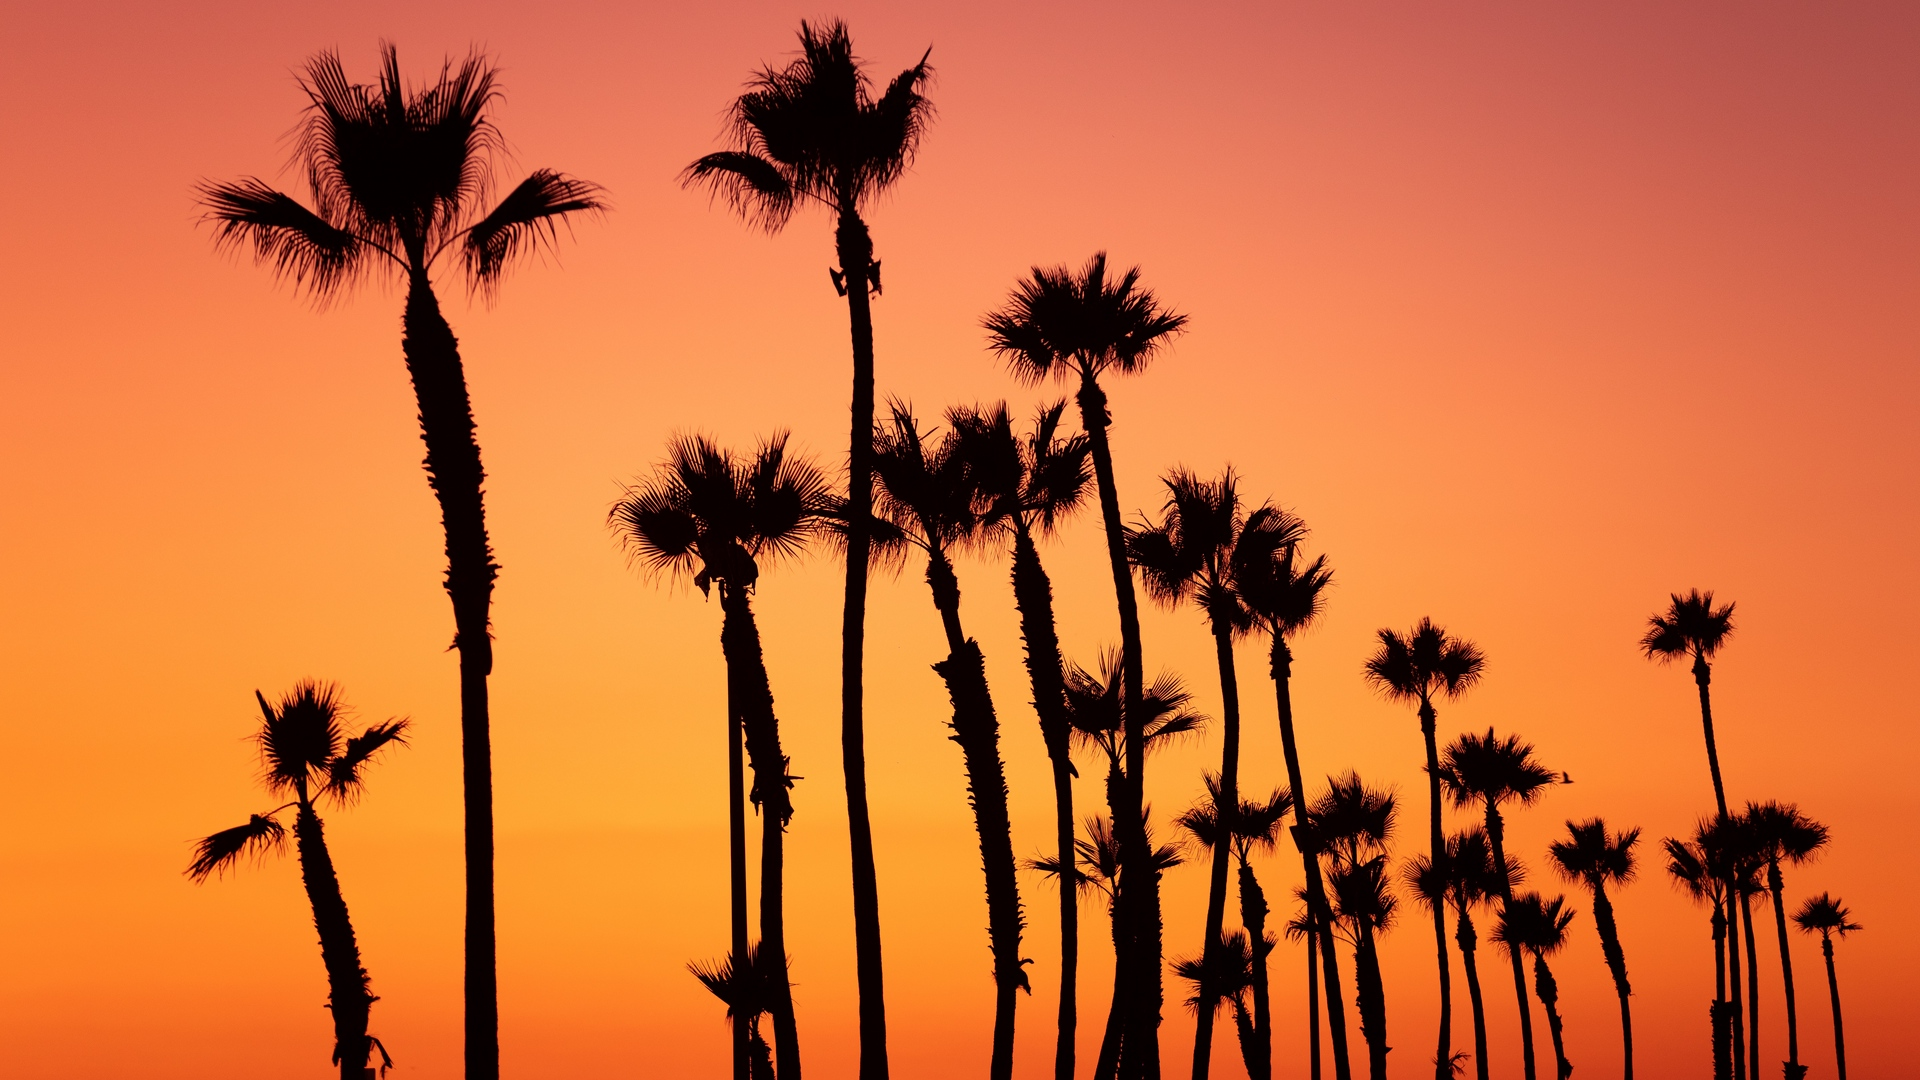 palm trees sunset sky